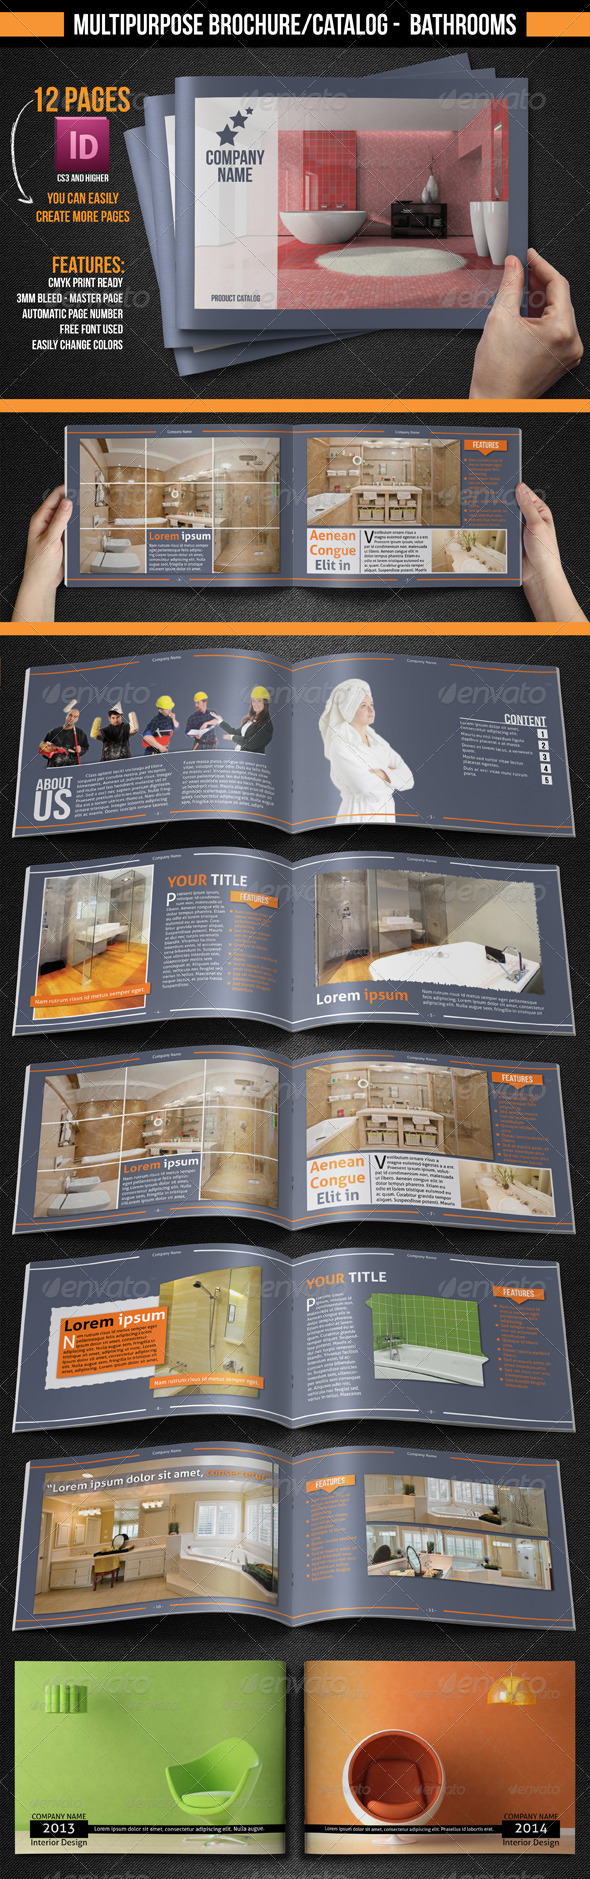 Multipurpose Brochure/Catalogue - Bathrooms - Catalogs Brochures